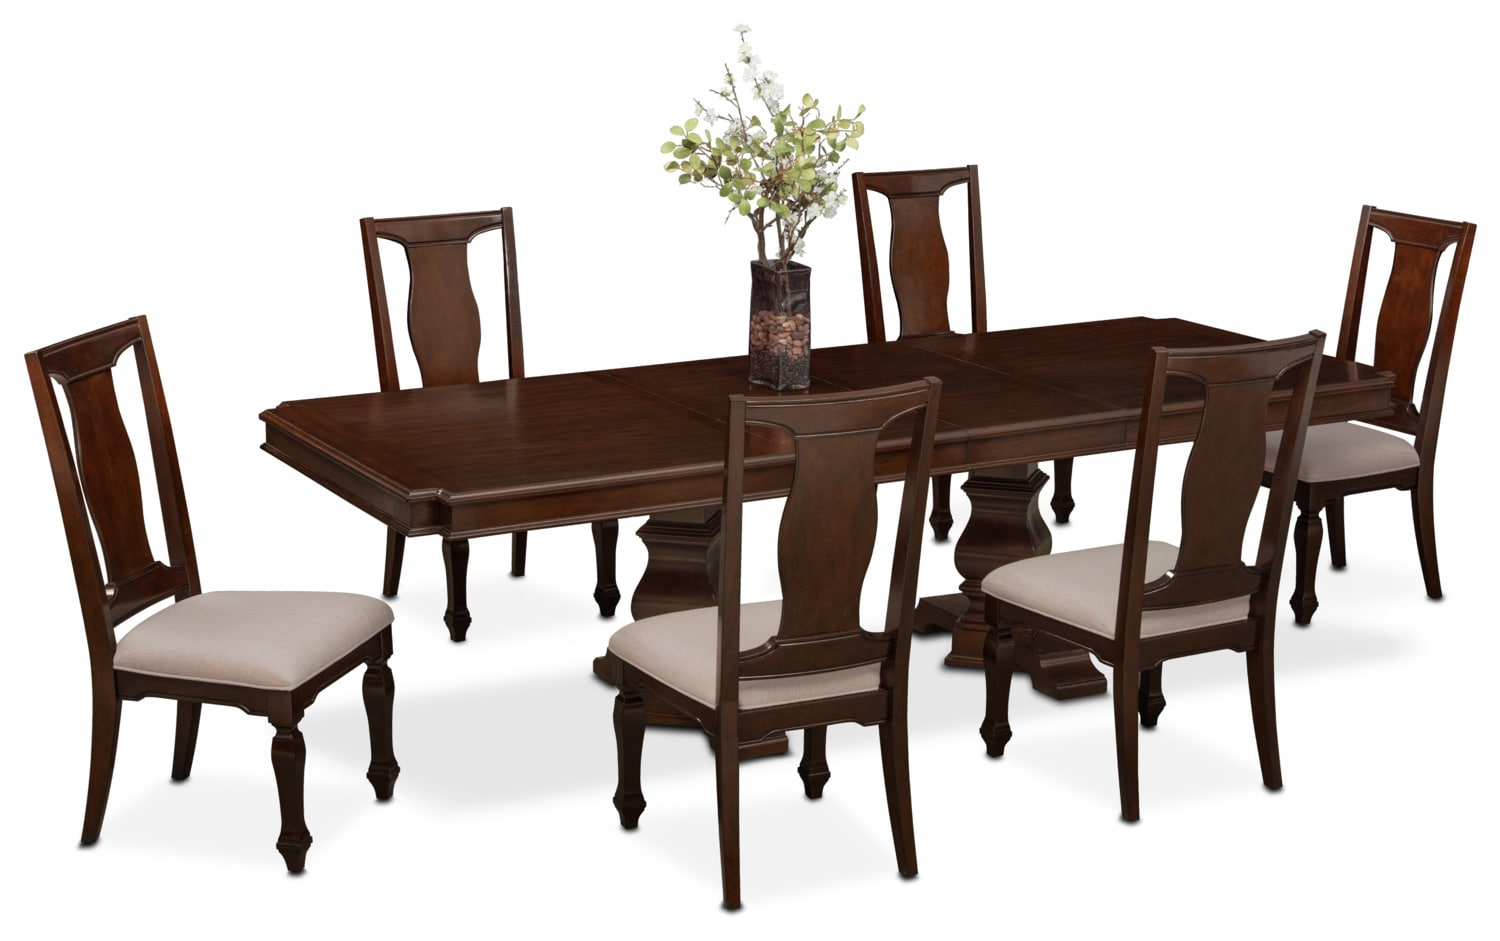 Vienna Dining Table And 6 Side Chairs   Merlot